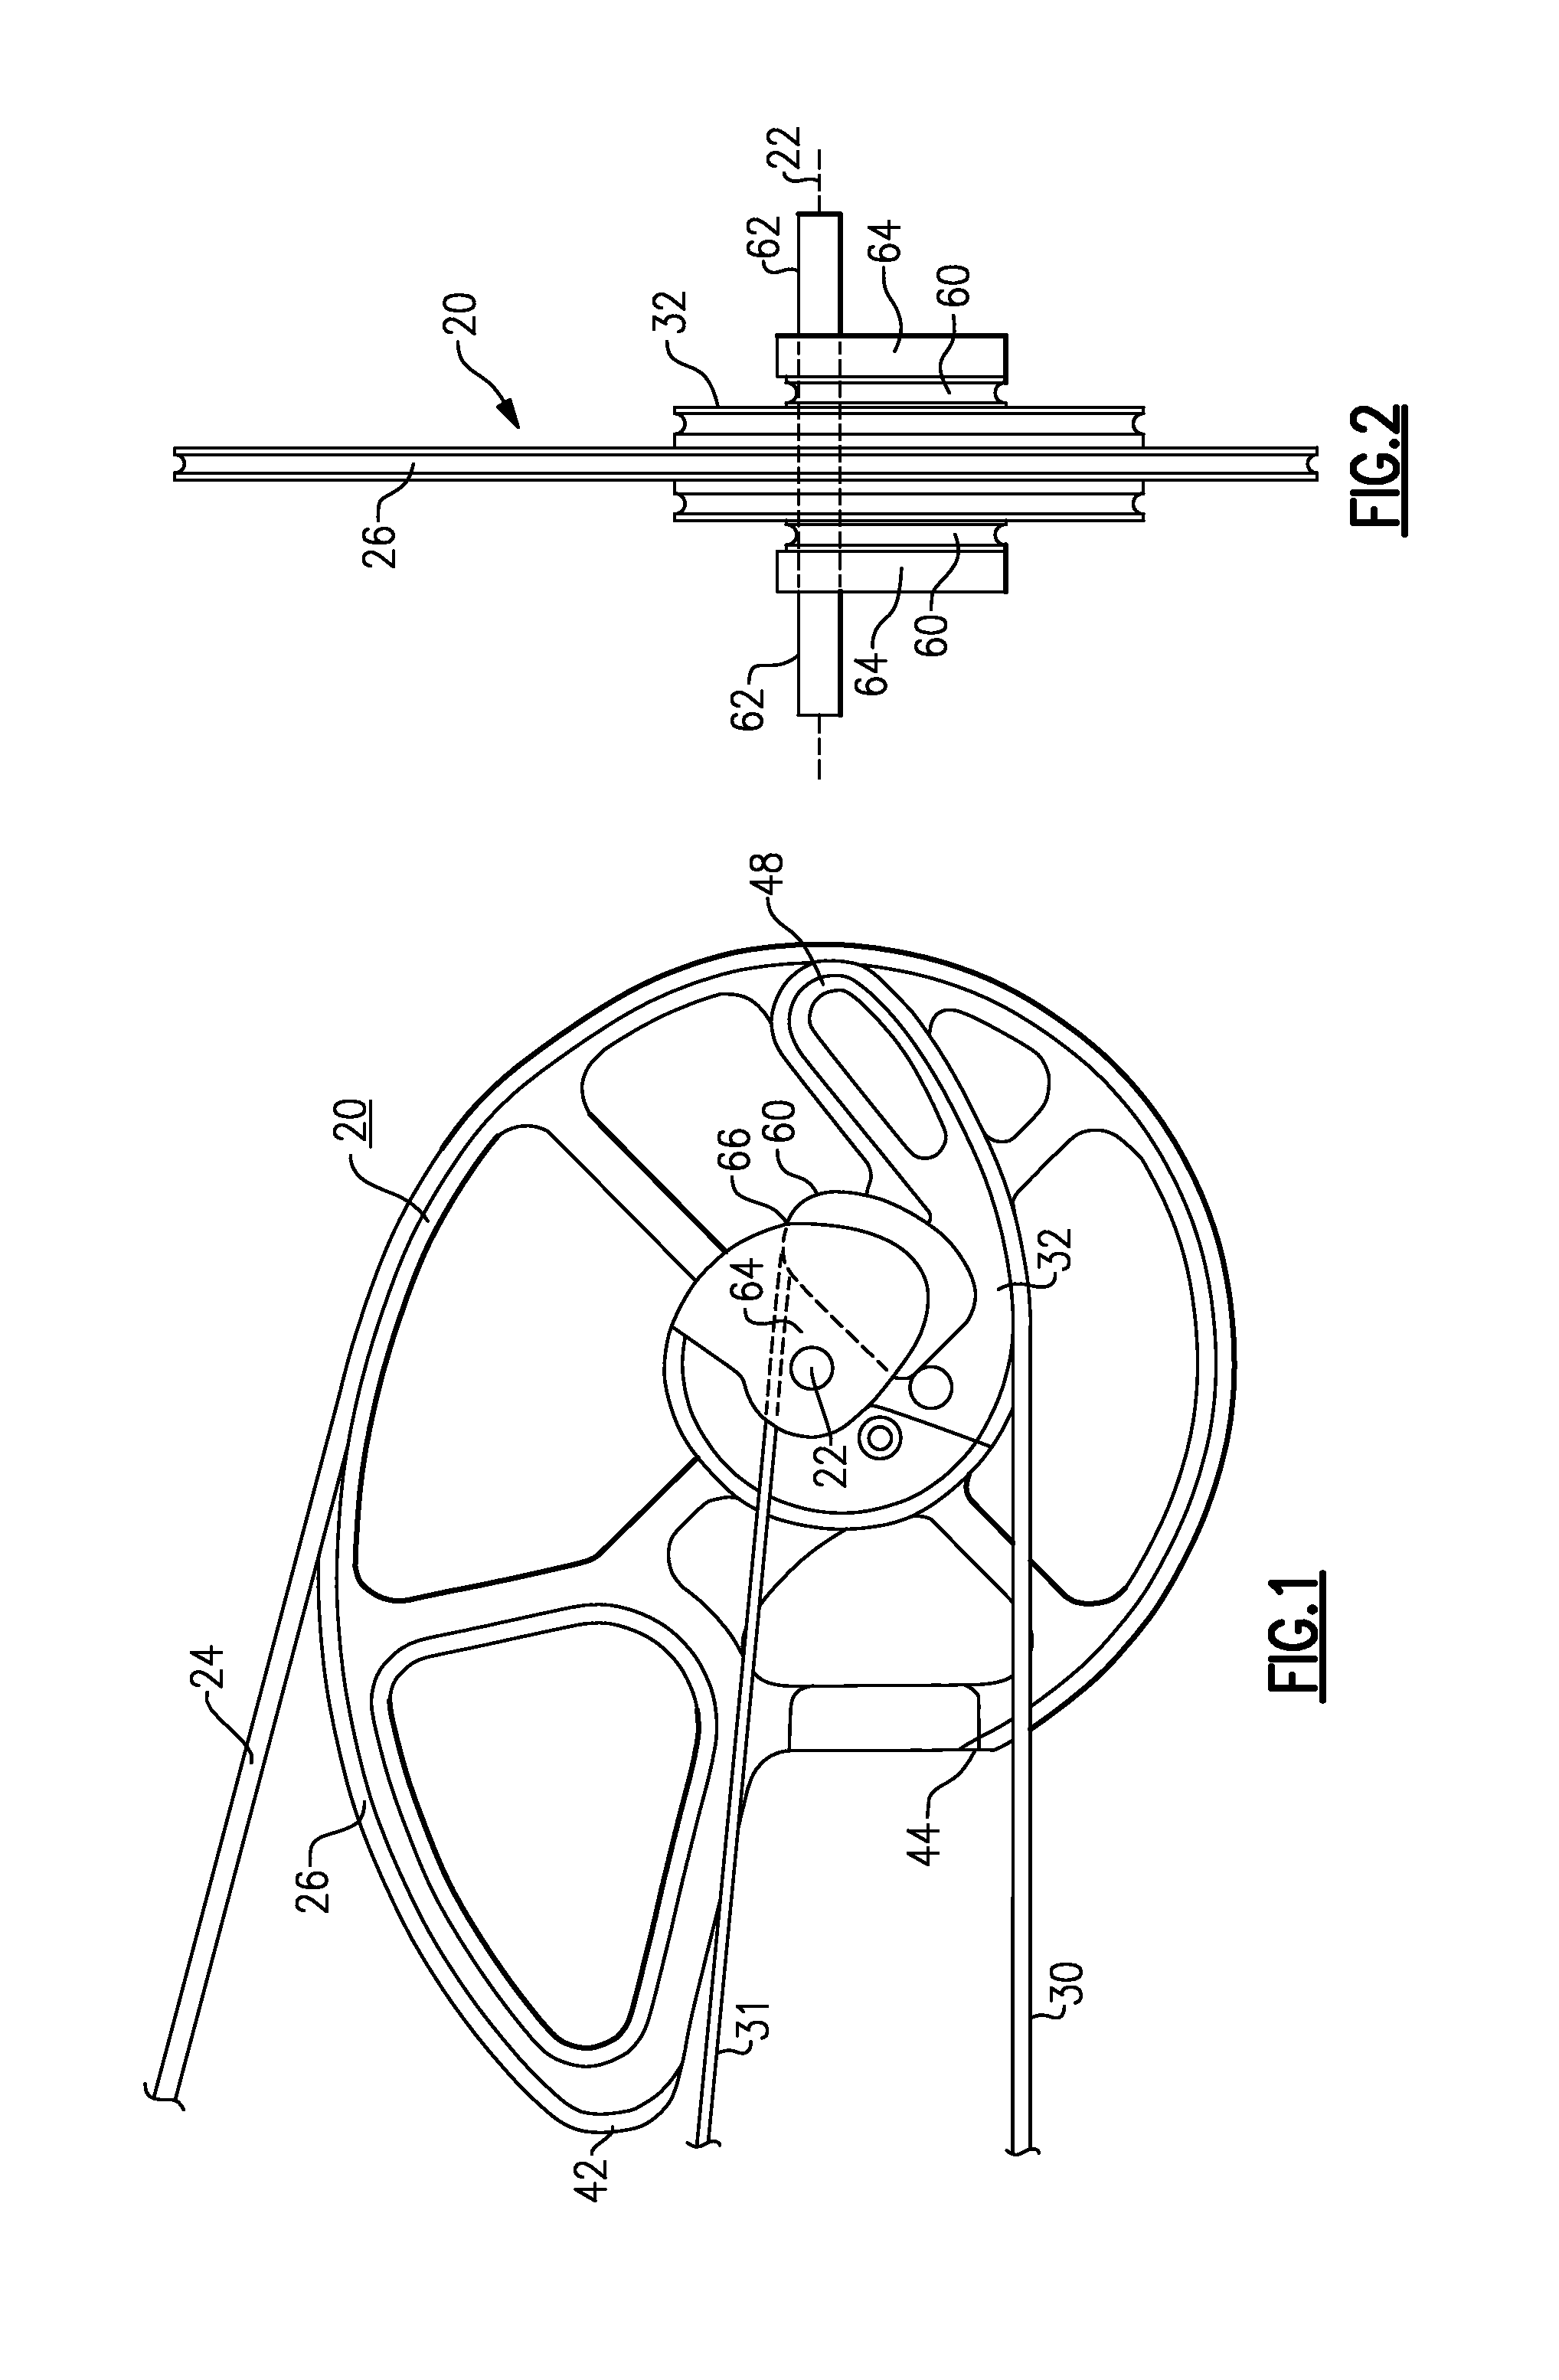 Patent US20080135032 - Bowstring Cam for Compound Bow - Google Patents